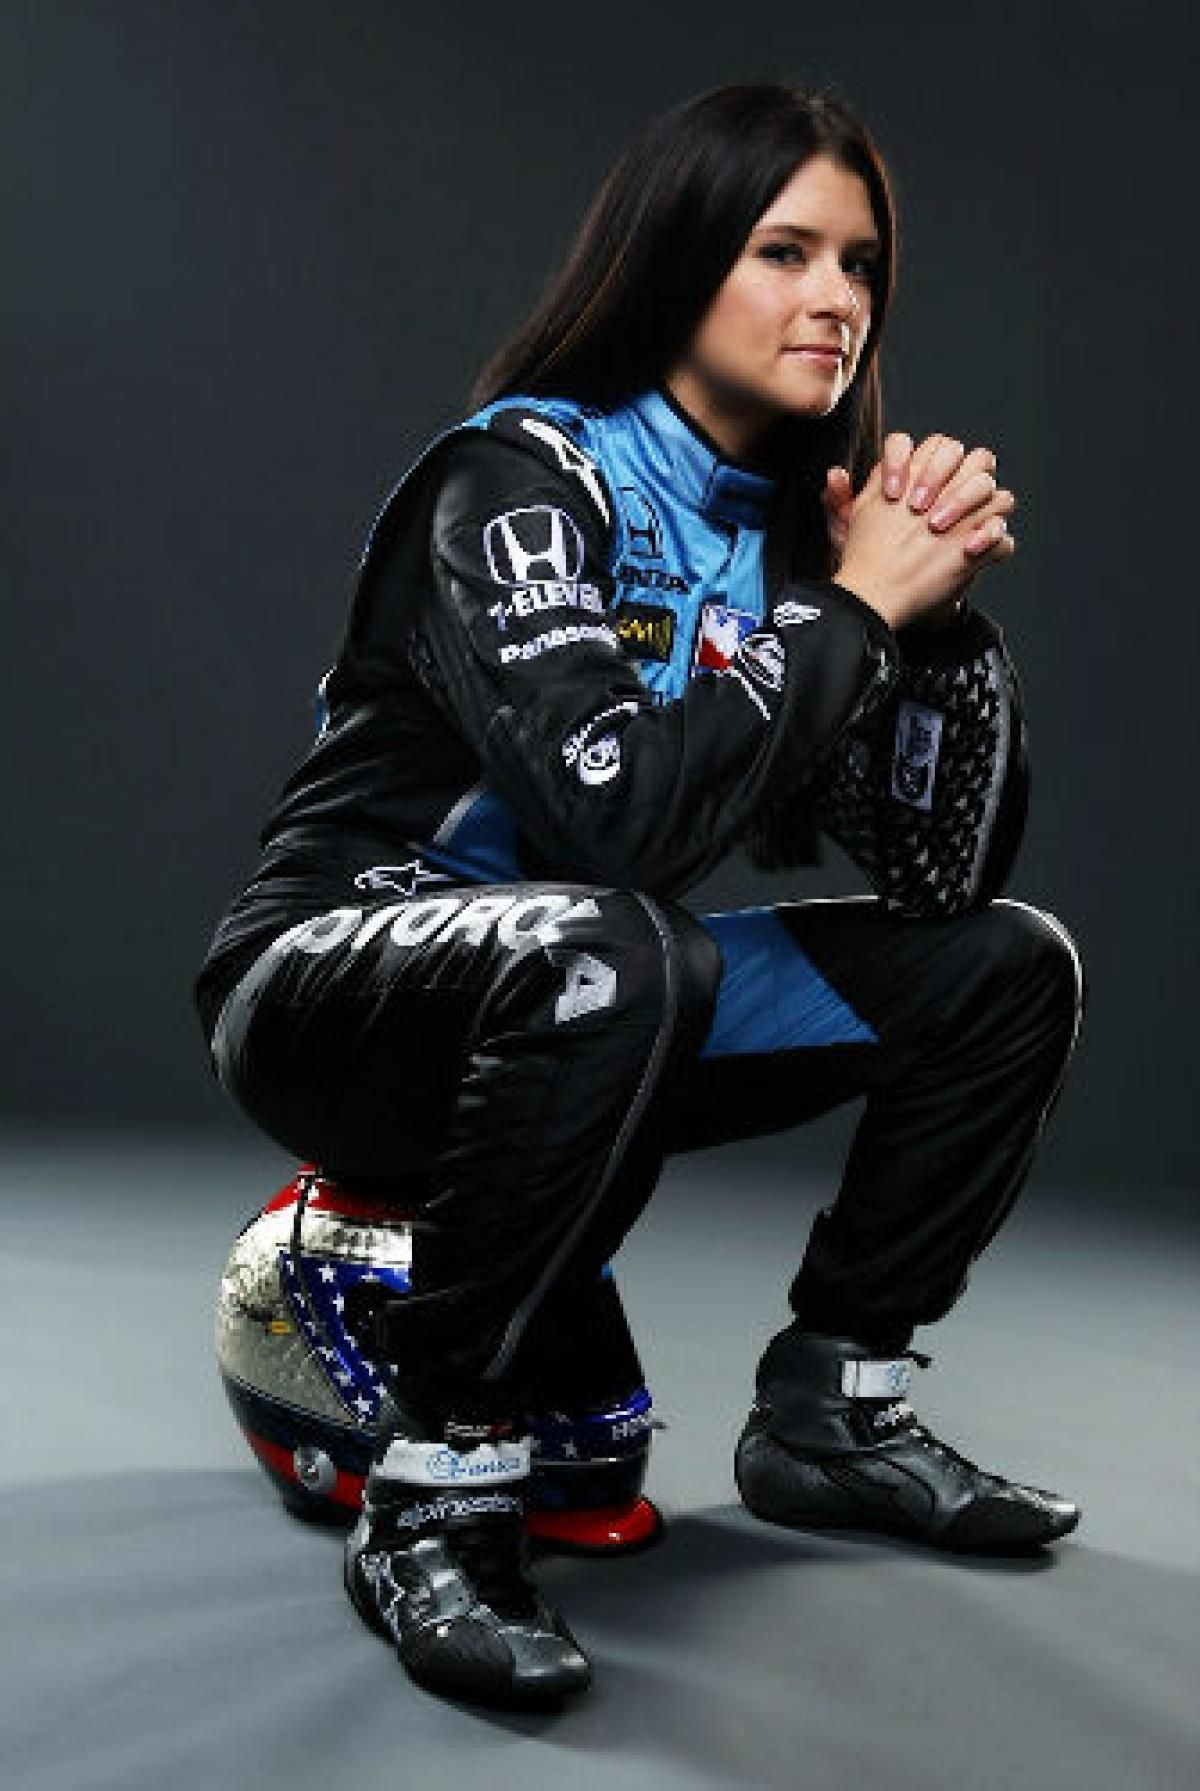 Danica Patrick first woman to win IndyCar series NY